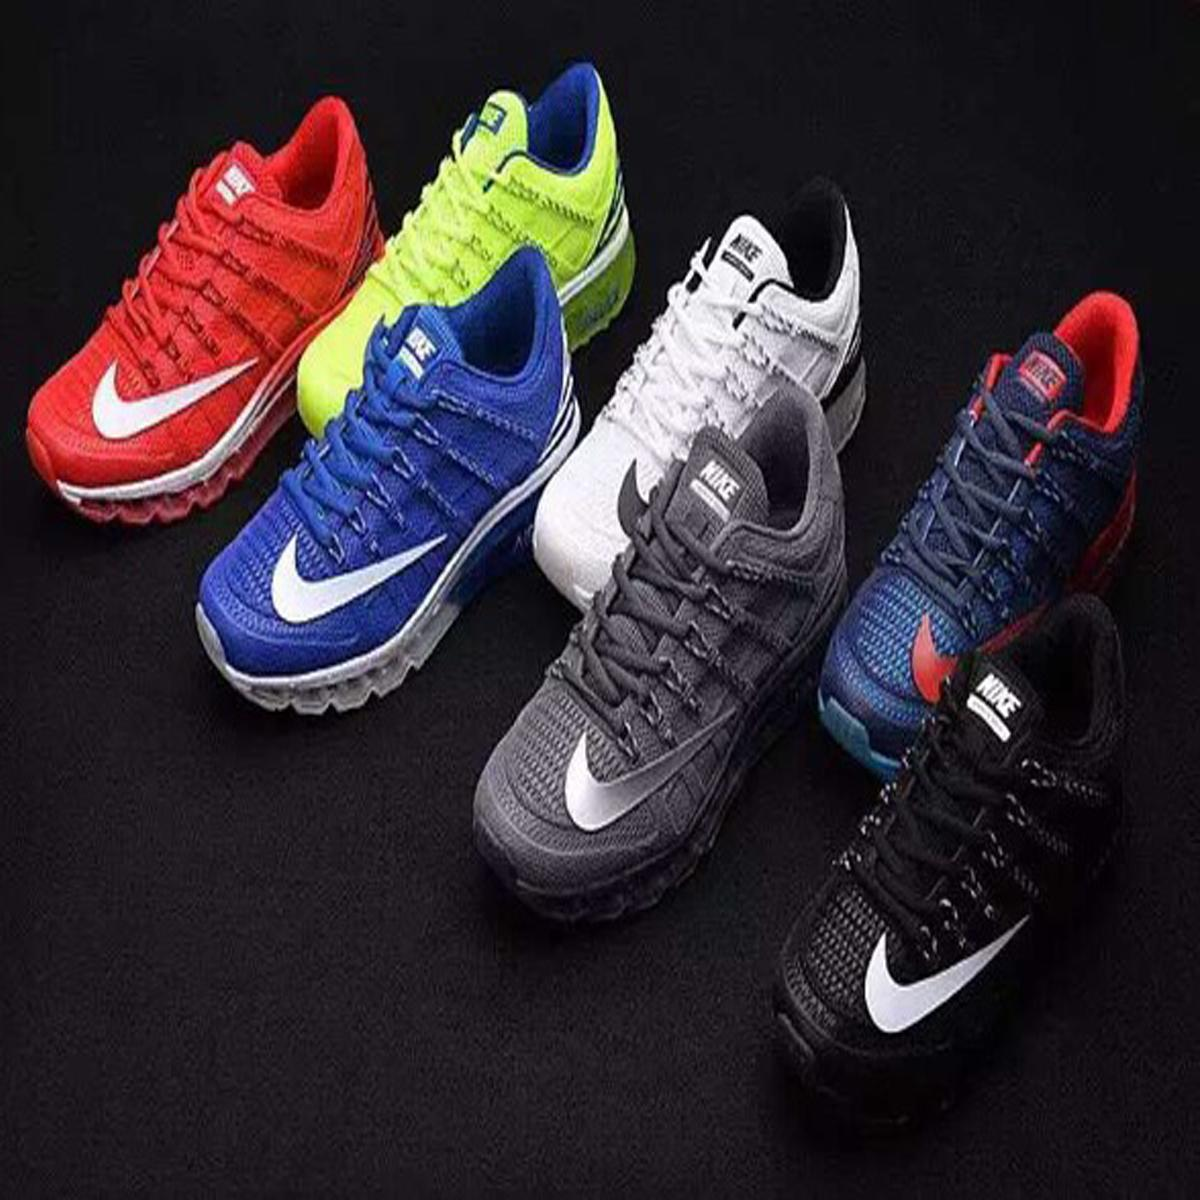 check out 03e07 64d13 Nike Air Max 2016 Kpu Men Running Shoes Discount Outdoor Sports Shoes Cheap  Brand Air Max Jogging Shoes For Male Size 40 46 Running Shoes Men From ...